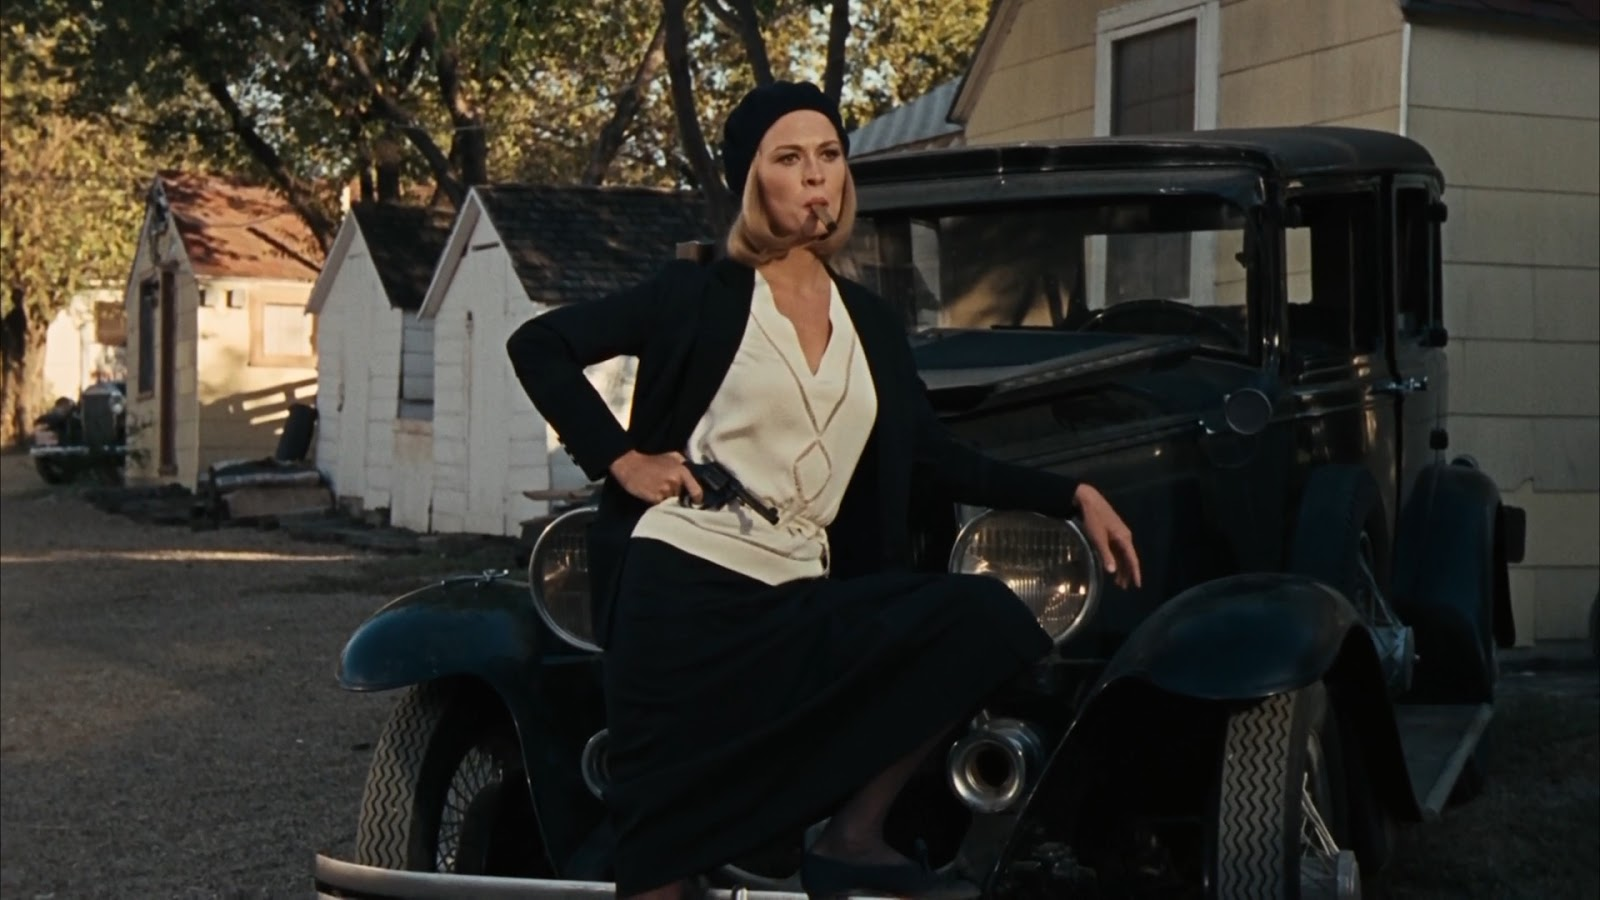 Bonnie and Clyde 1967 Dual BRRip 1080 8 GB Zippy